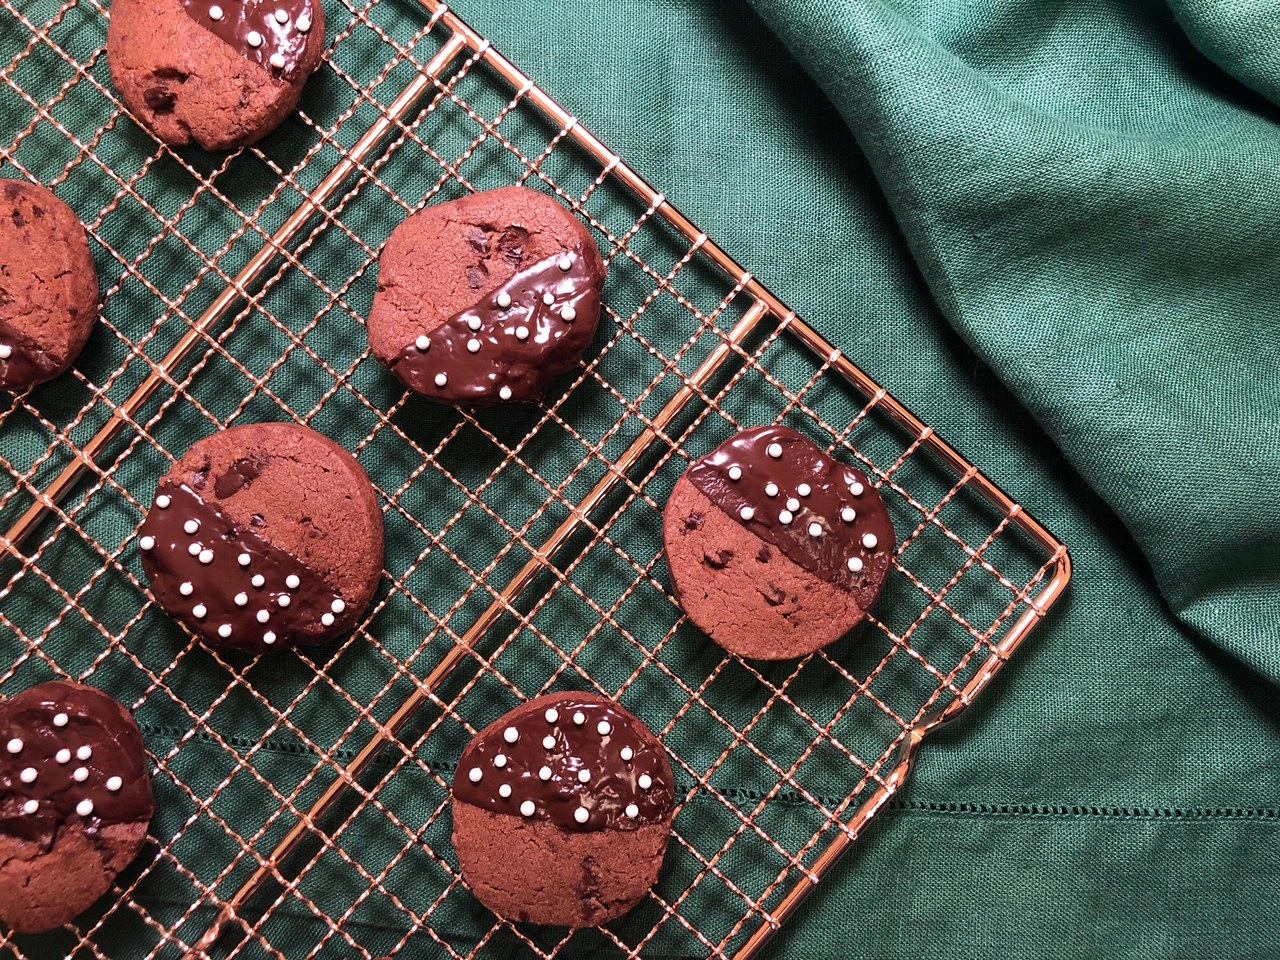 Dark Chocolate Sables